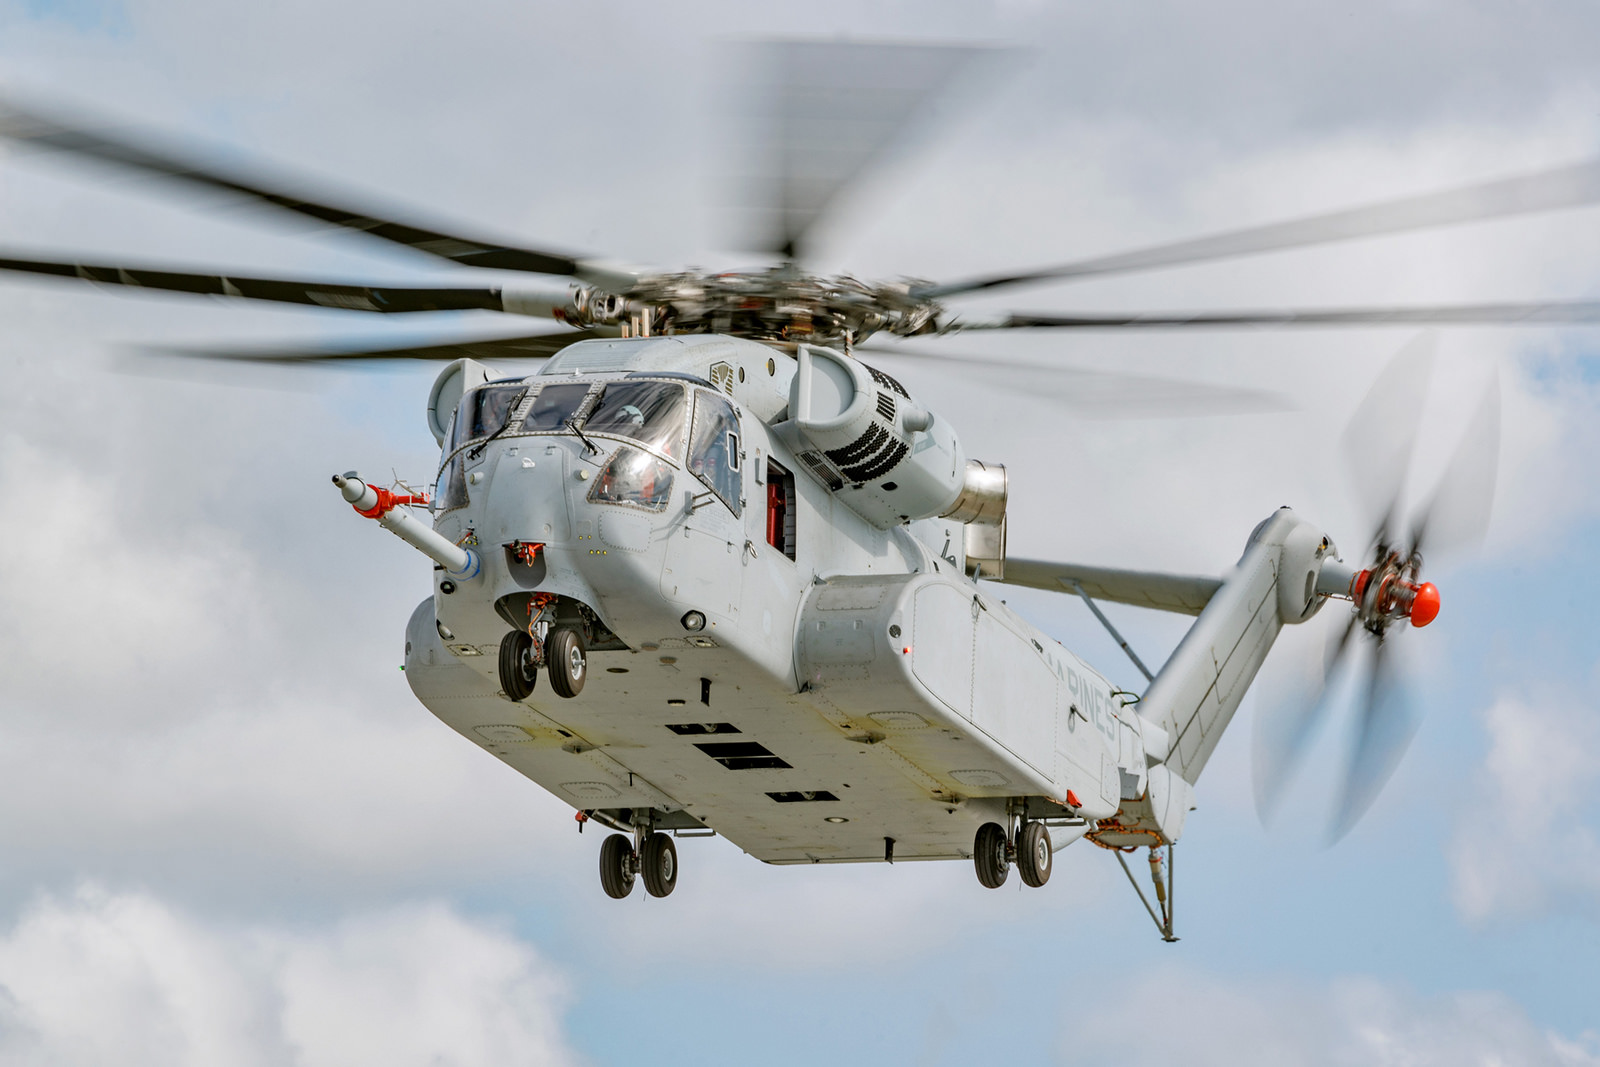 53k helicopter with Us Marine Corps Ch 53k King Stallion Nears Production on 252472 New King Stallion Helicopter Packs Massive Punch Will Ready Next Year besides Ch 53k King Stallion Pentagons Expensive Aircraft further Index cfm likewise Ch 47f rockwell likewise Sikorsky CH 53.